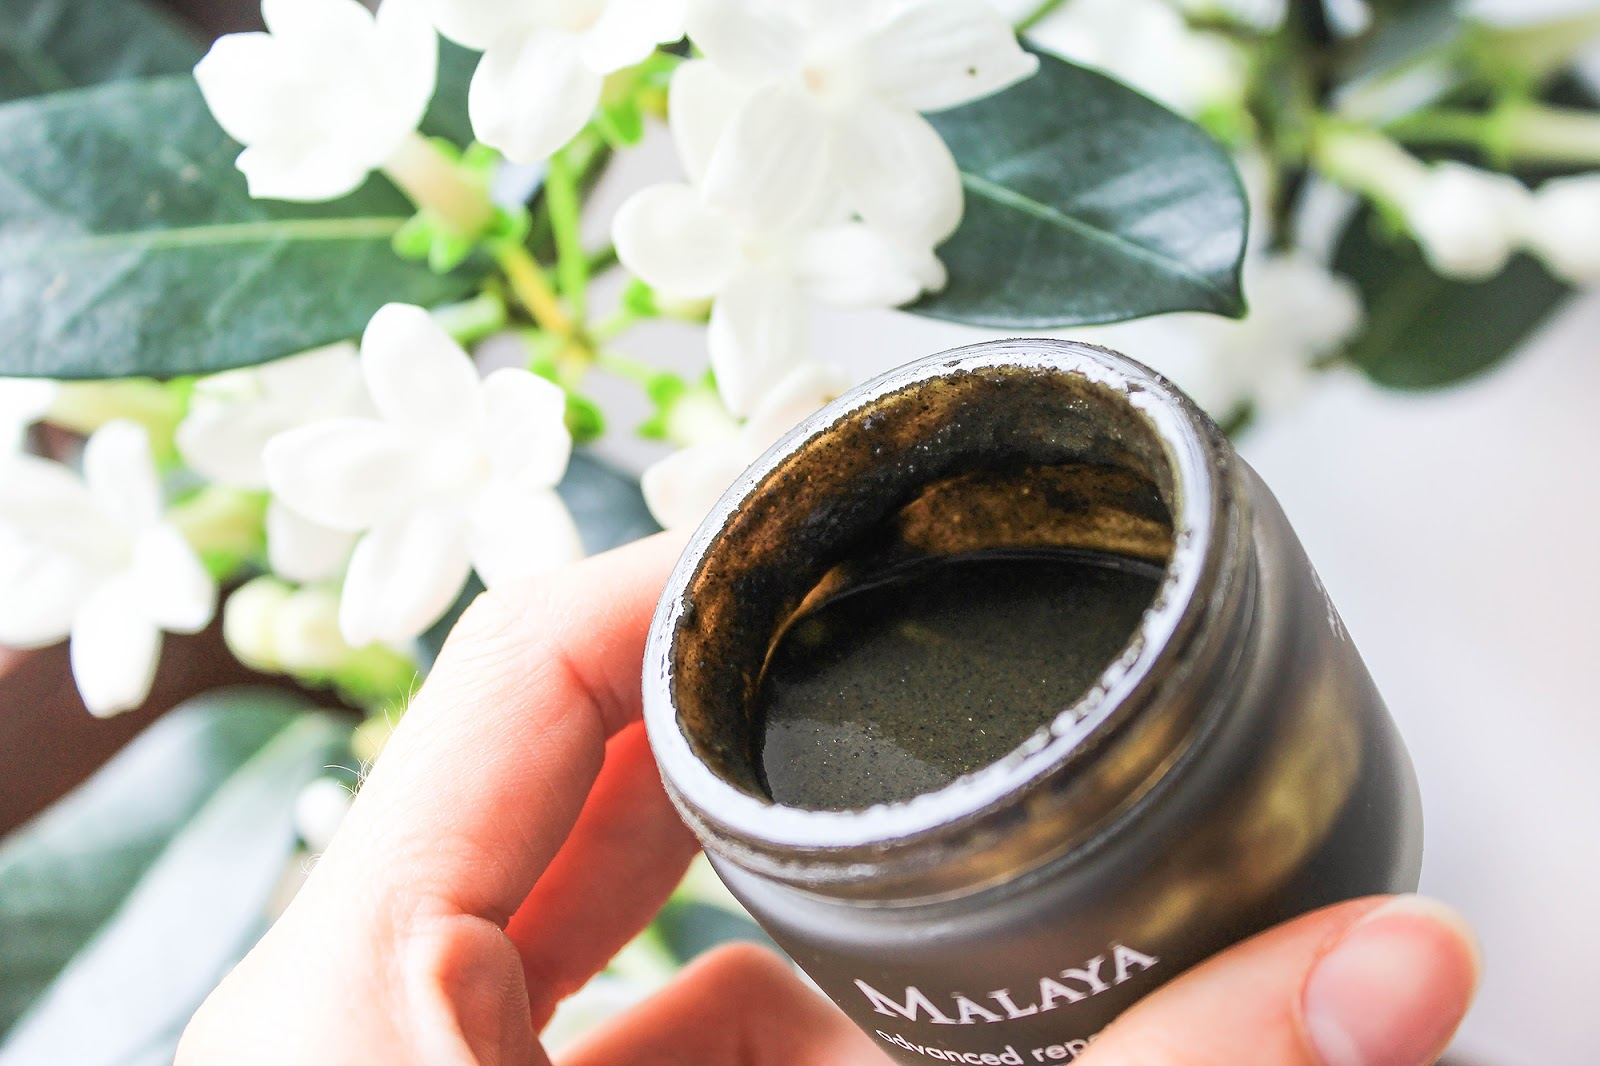 Malaya Organics Advanced Repair Mask Neem Honey Herbal Complex. Runny, gritty consistency.